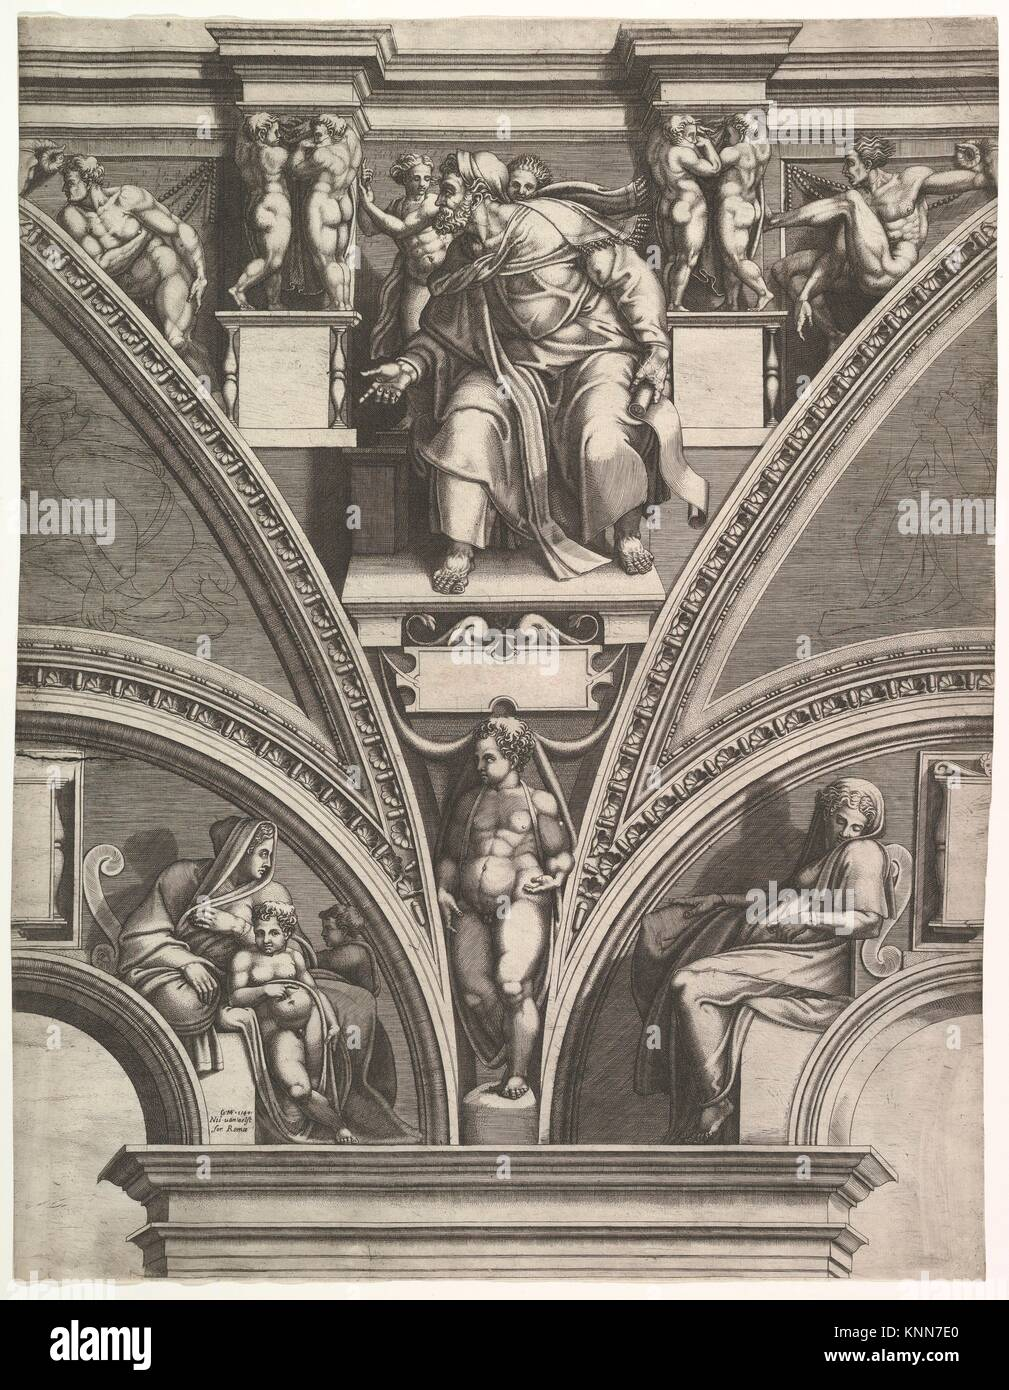 The Prophet Ezekiel; from the series of Prophets and Sibyls in the Sistine Chapel. Artist: Giorgio Ghisi (Italian, - Stock Image